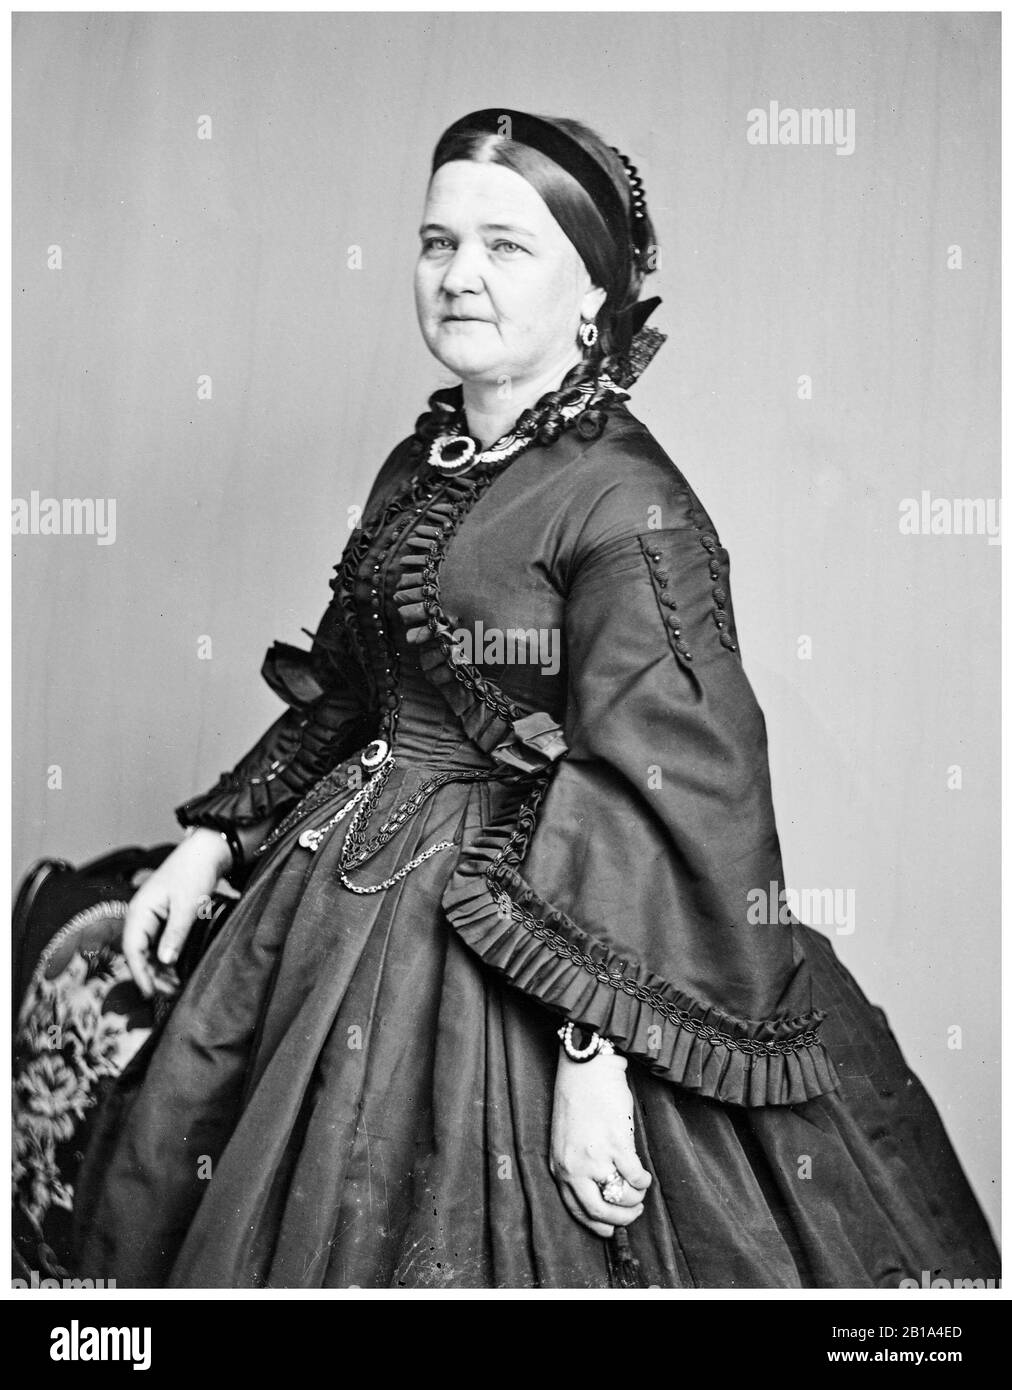 Mary Todd Lincoln (1818-1882), wife of President Abraham Lincoln, First Lady (1861-1865), portrait photograph by Mathew Brady Studio, circa 1863 Stock Photo